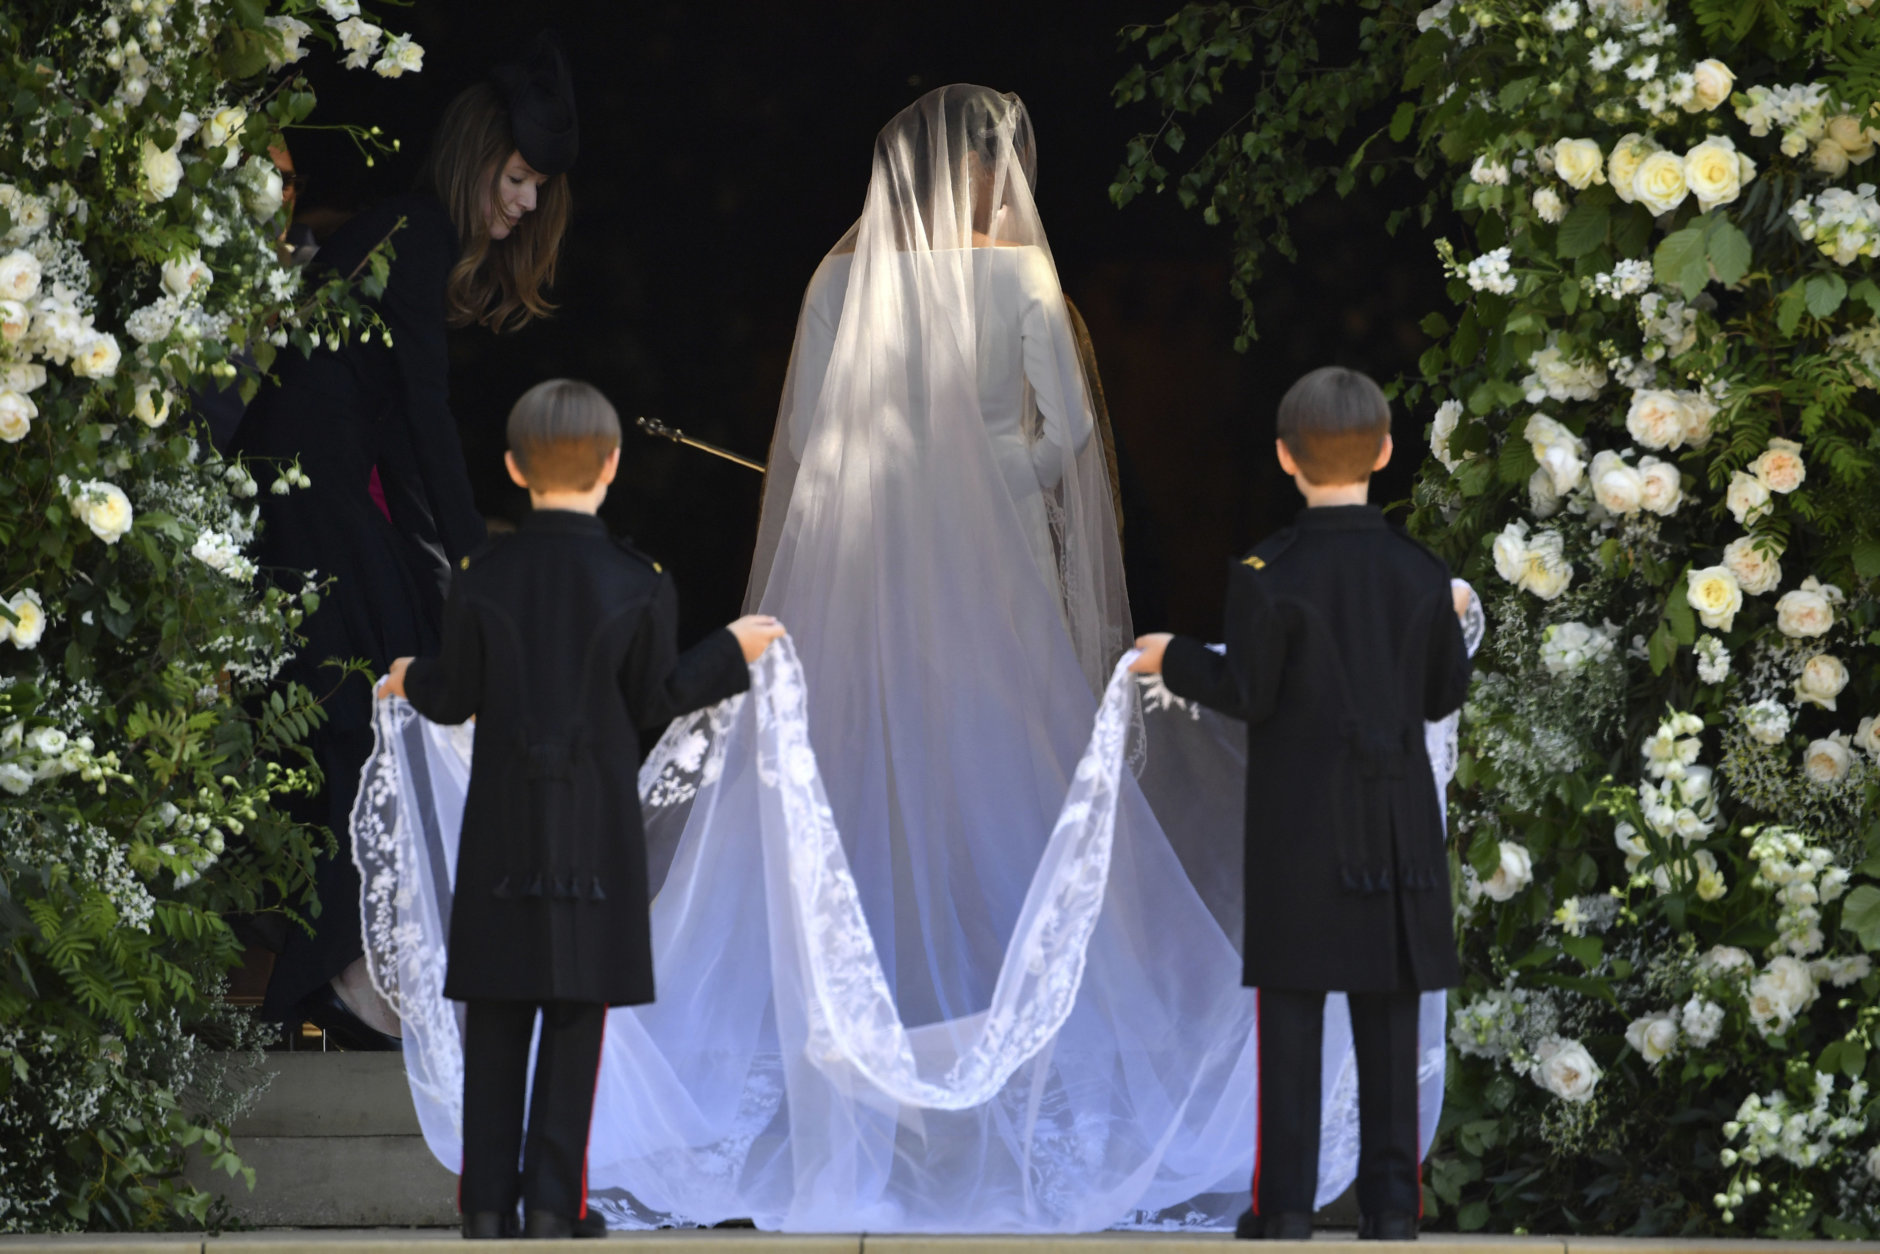 Meghan Markle arrives for her wedding ceremony at St. George's Chapel in Windsor Castle in Windsor, near London, England, Saturday, May 19, 2018. (Ben Stansall/pool photo via AP)